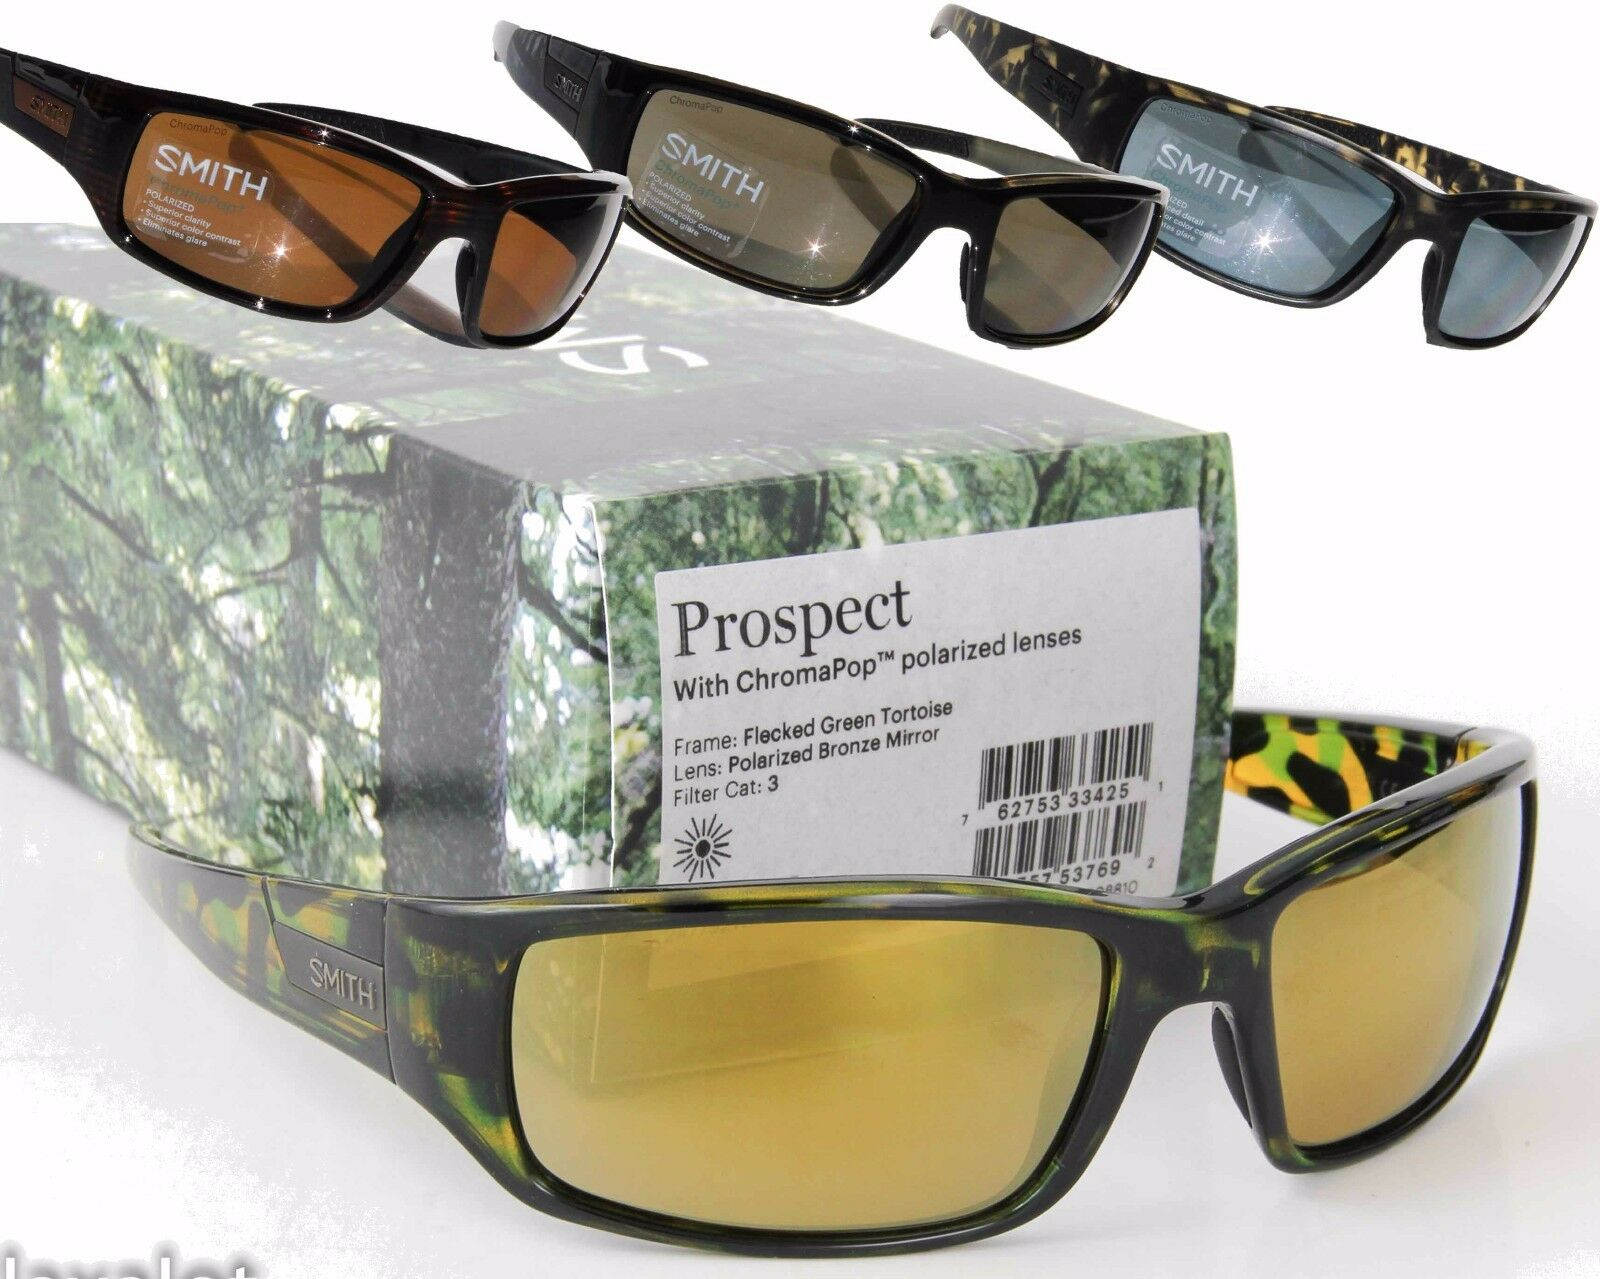 4da2eaafa34 Smith Optics Sunglasses Adult Lifestyle Prospect Polarized POCP Black Gray  Green for sale online